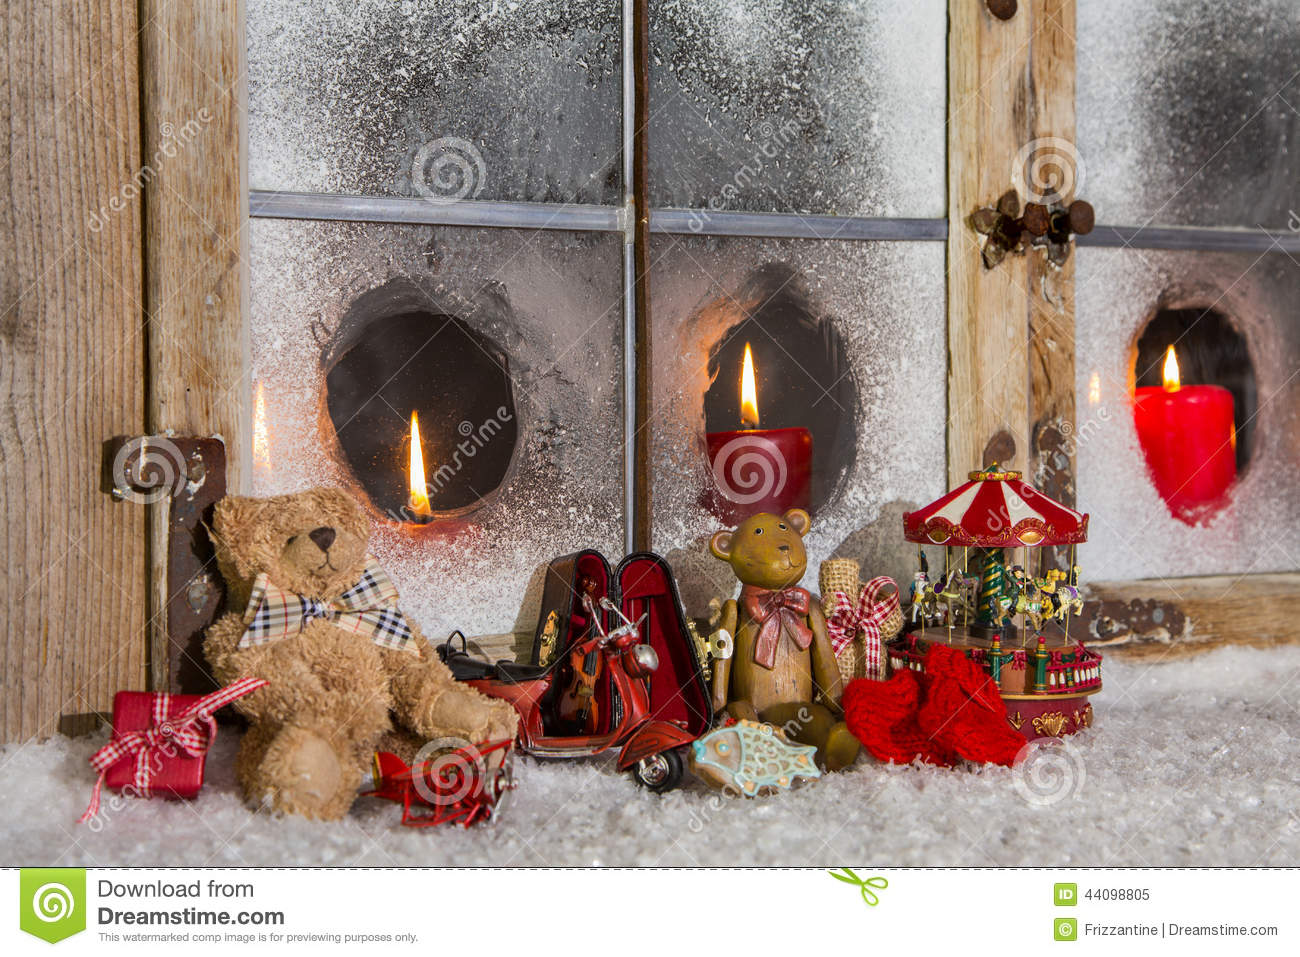 #BD0E14 Christmas Window Decoration: Candles With Old Children  7034 Deco De Noel Pour Fenetre 1300x957 px @ aertt.com